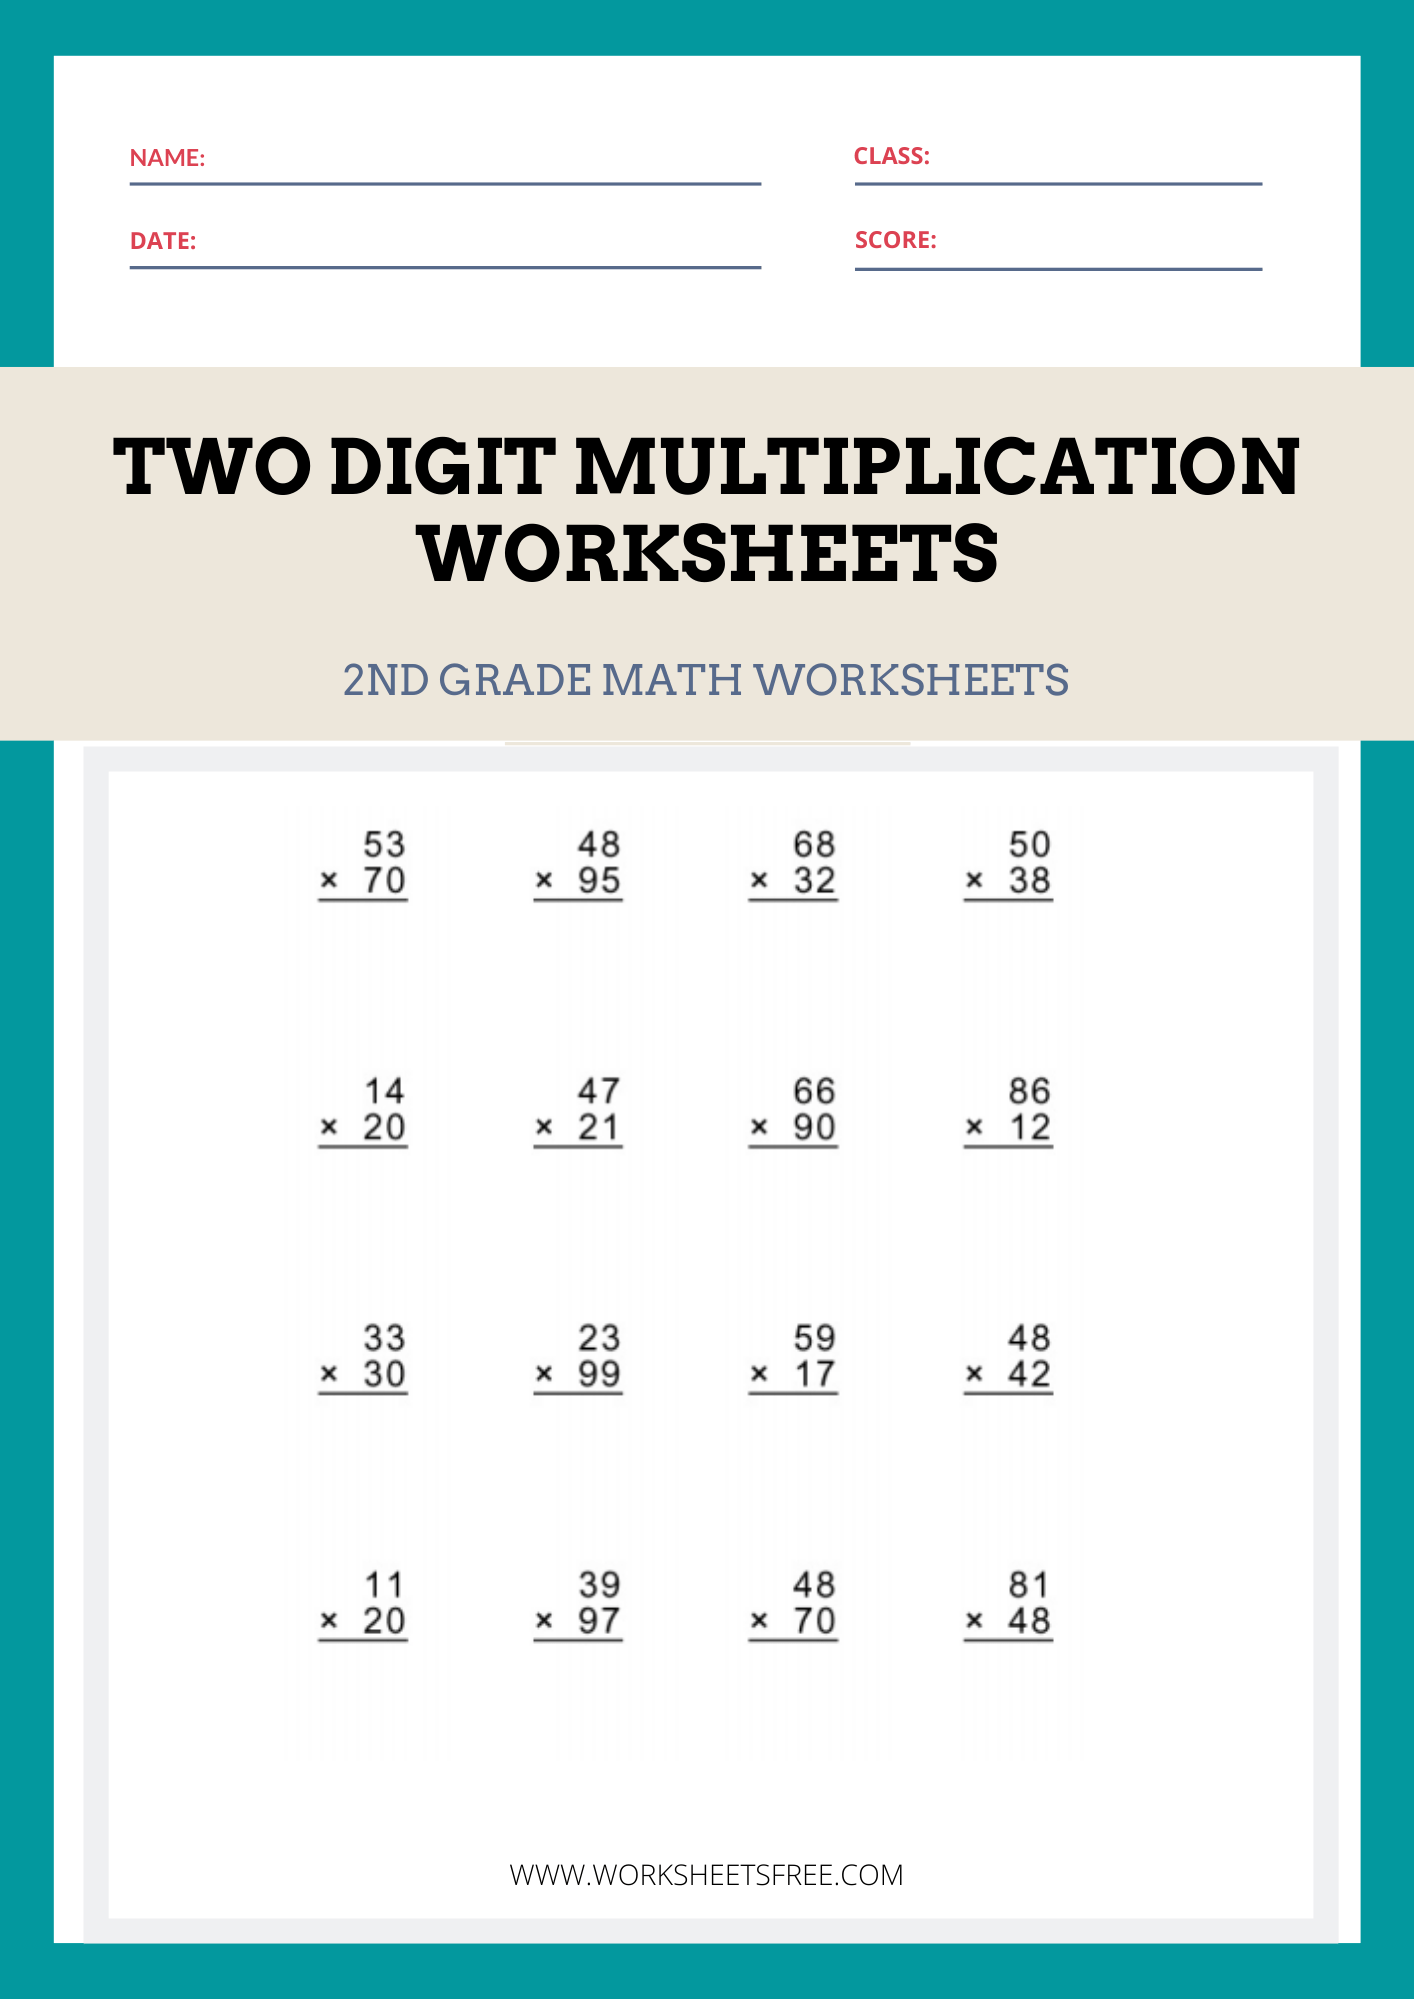 hight resolution of Two-Digit-Multiplication-Worksheets   Worksheets Free